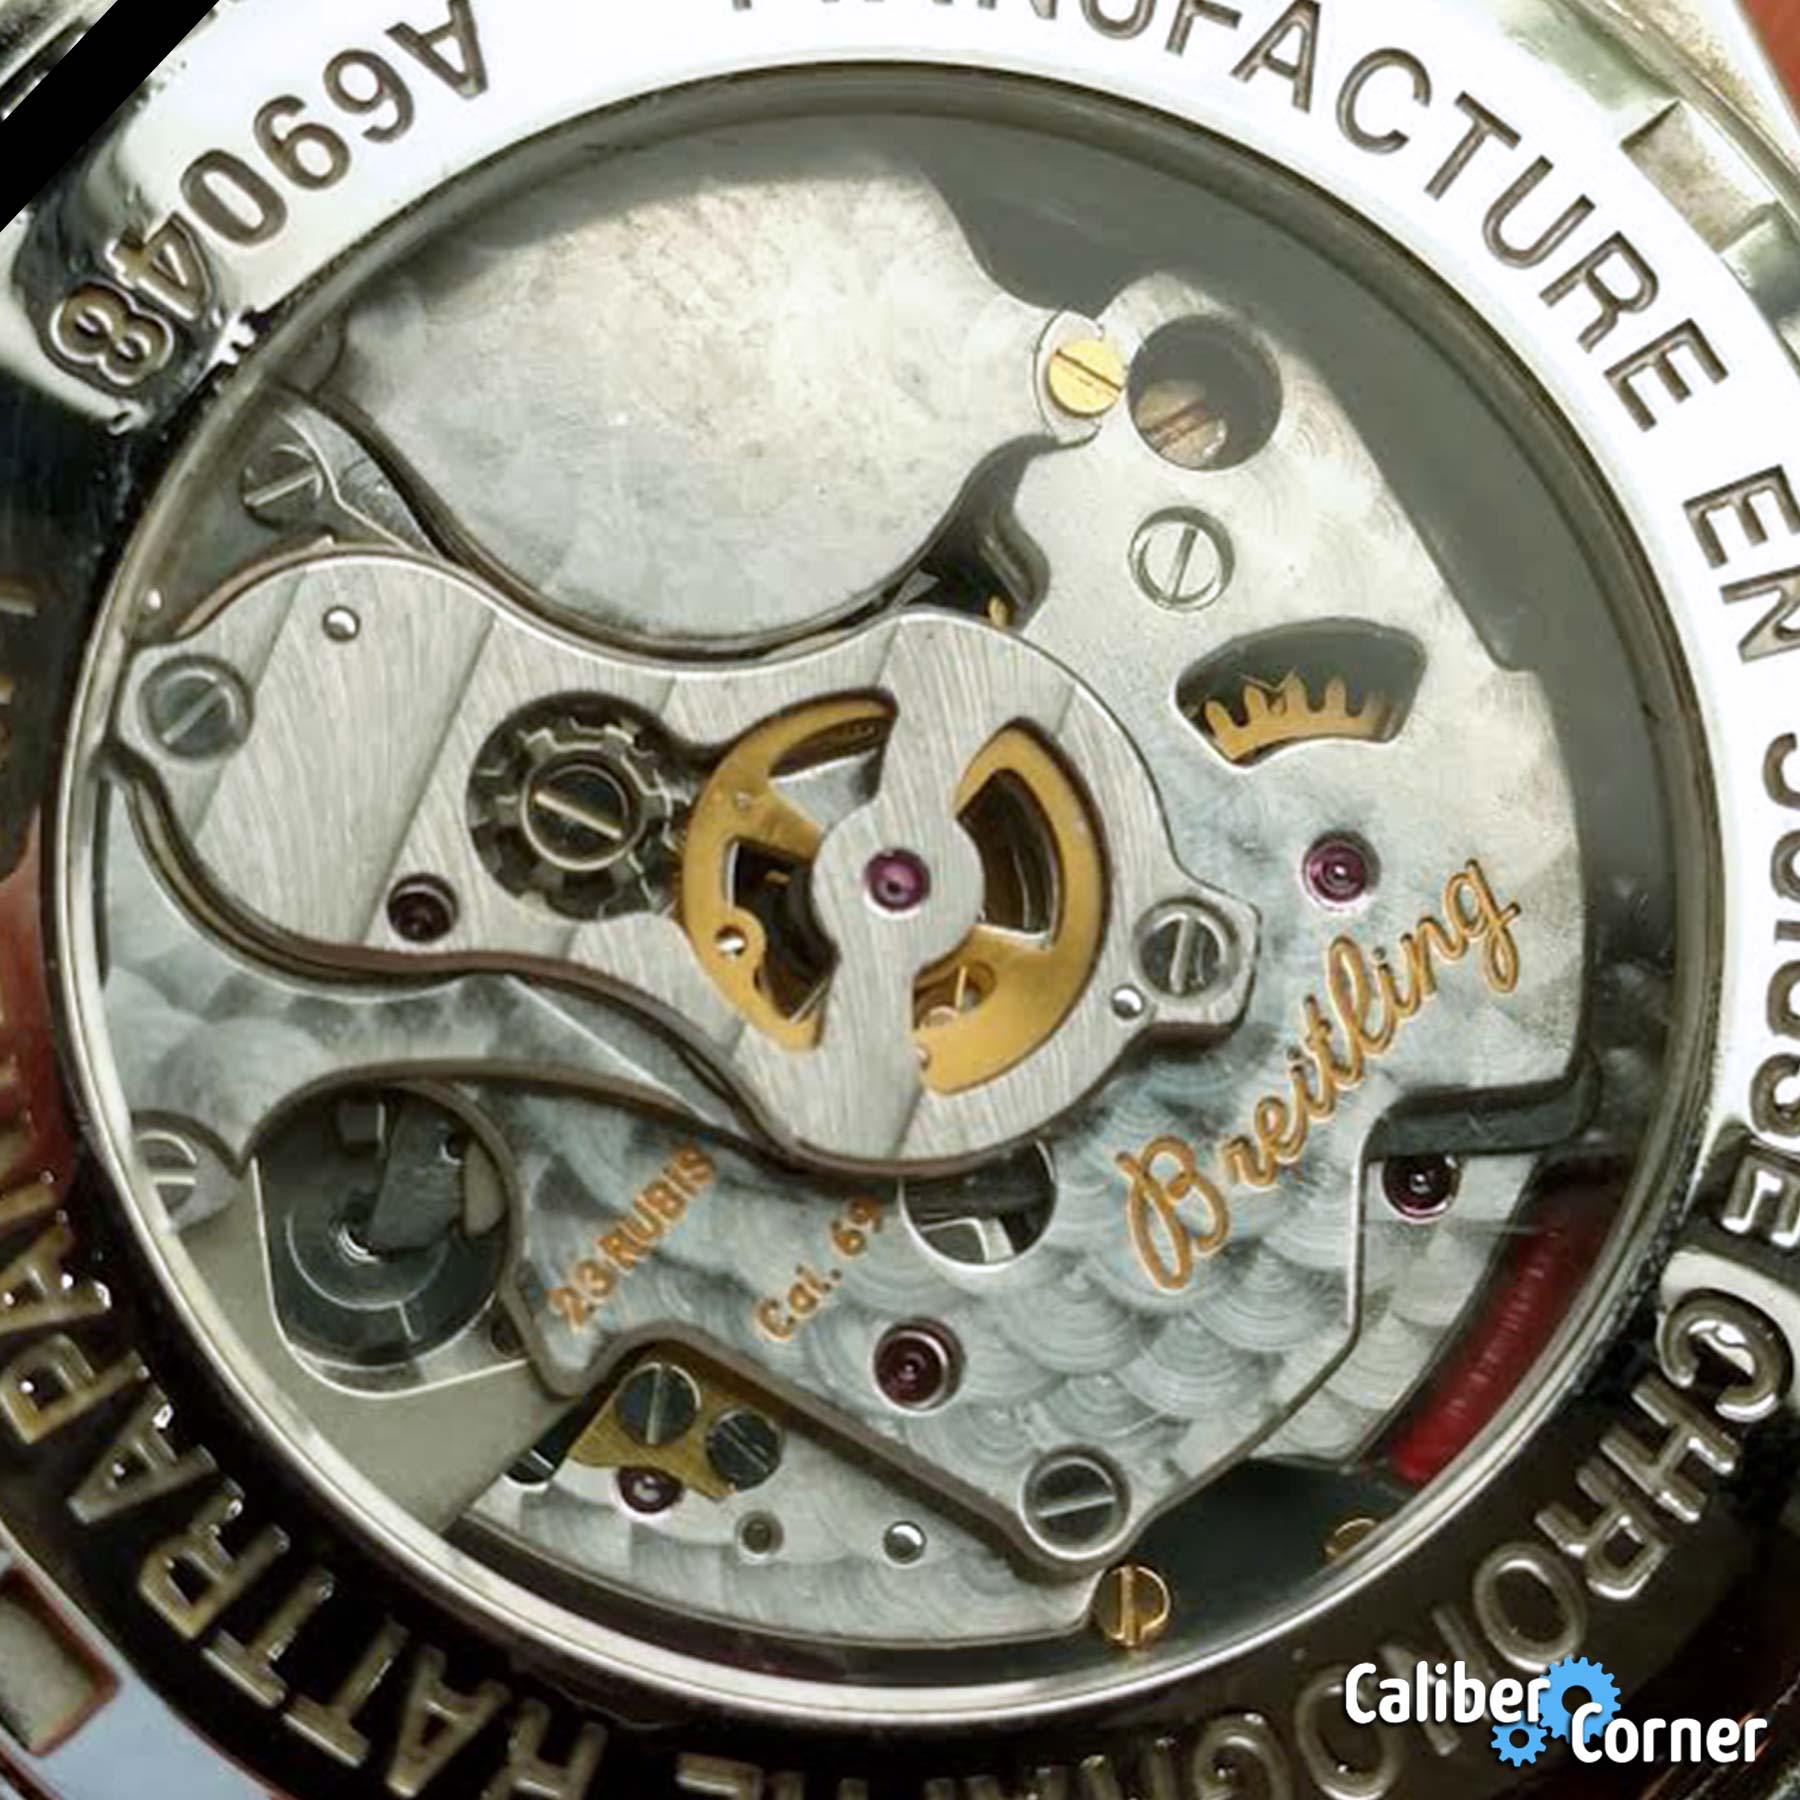 Breitling Cal 69 Movement